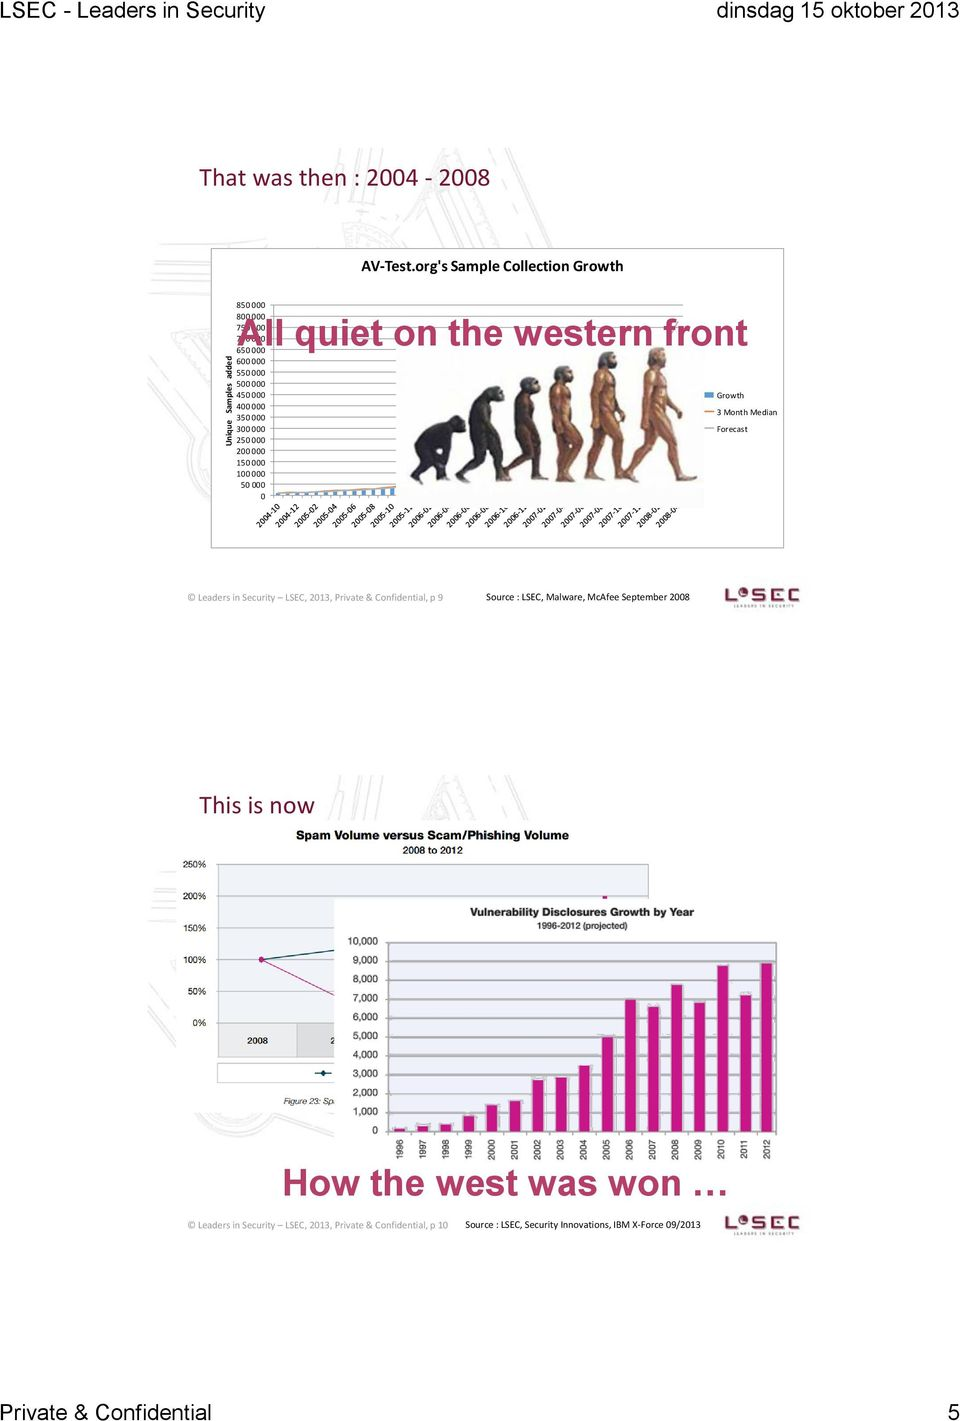 000 50 000 0 All quiet on the western front Growth 3 Month Median Forecast Leaders in Security LSEC, 2013, Private & Confidential, p 9 Source : LSEC,